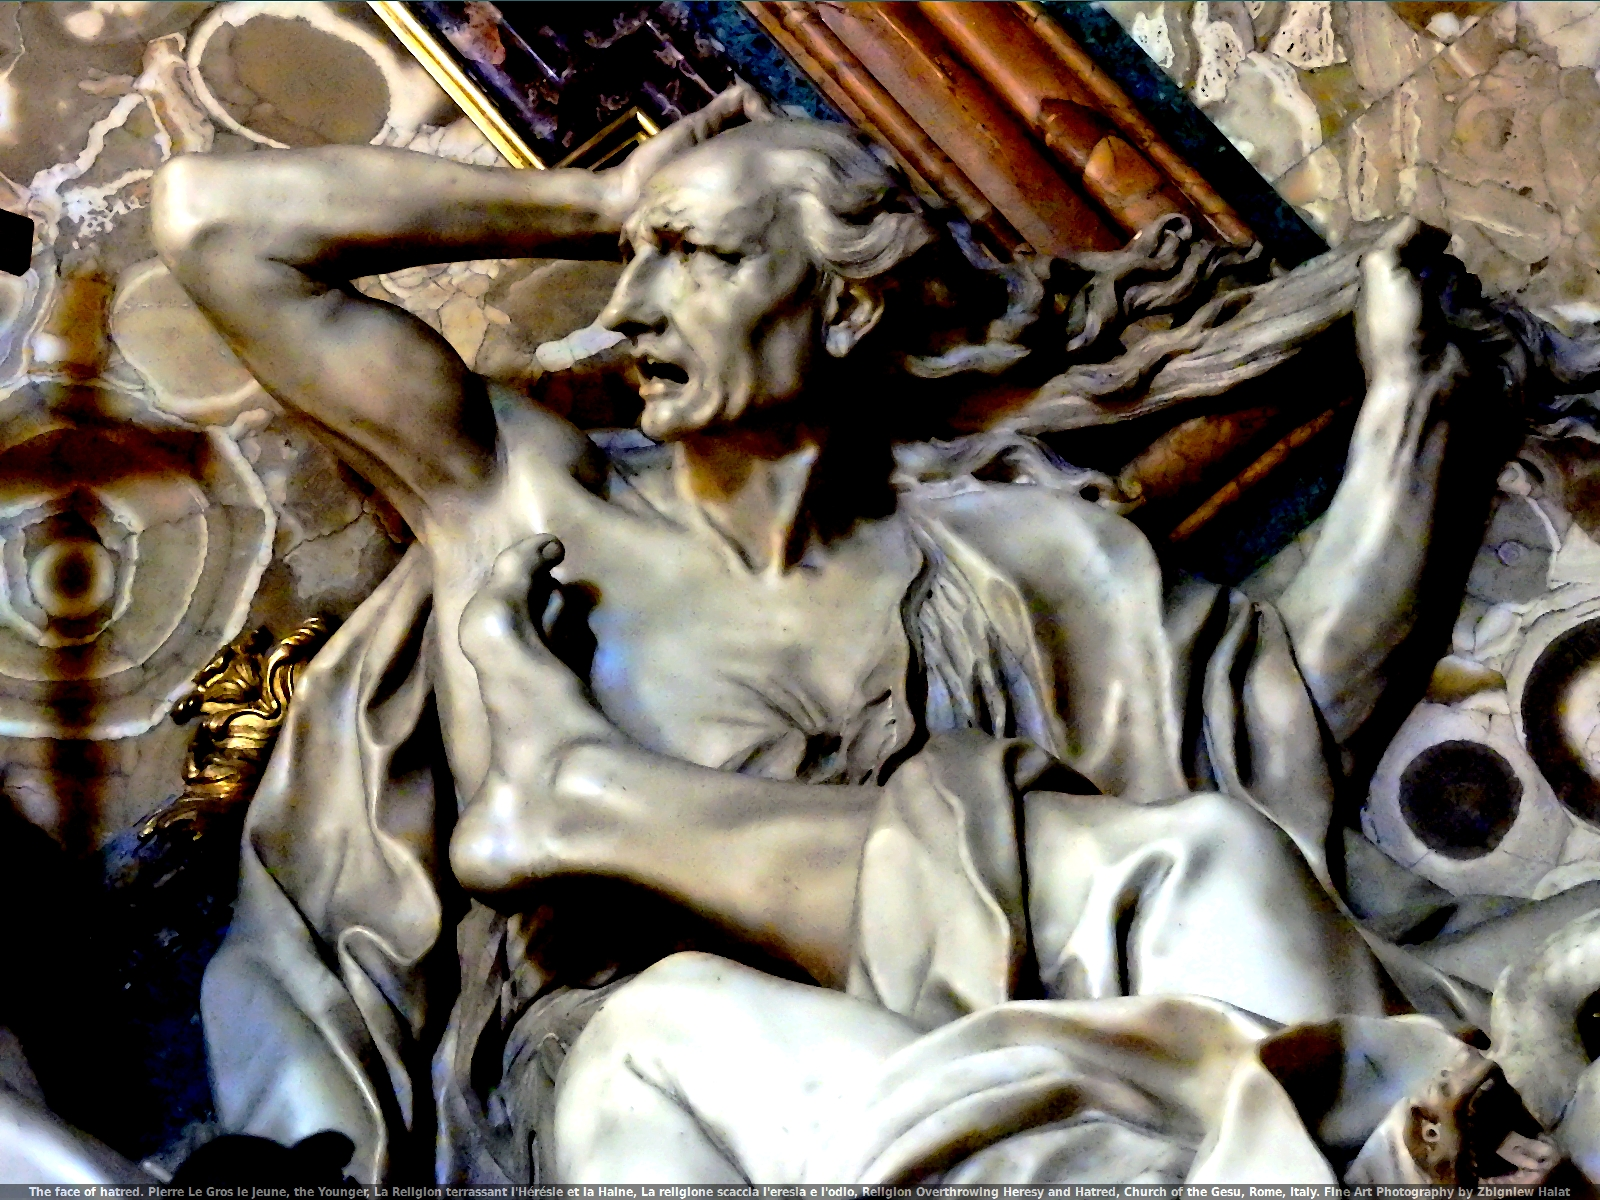 The face of hatred. Pierre Le Gros le jeune, the Younger, La Religion terrassant l'Hérésie et la Haine, La religione scaccia l'eresia e l'odio, Religion Overthrowing Heresy and Hatred, Church of the Gesù, Rome, Italy. Fine Art Photography by Zbigniew Halat